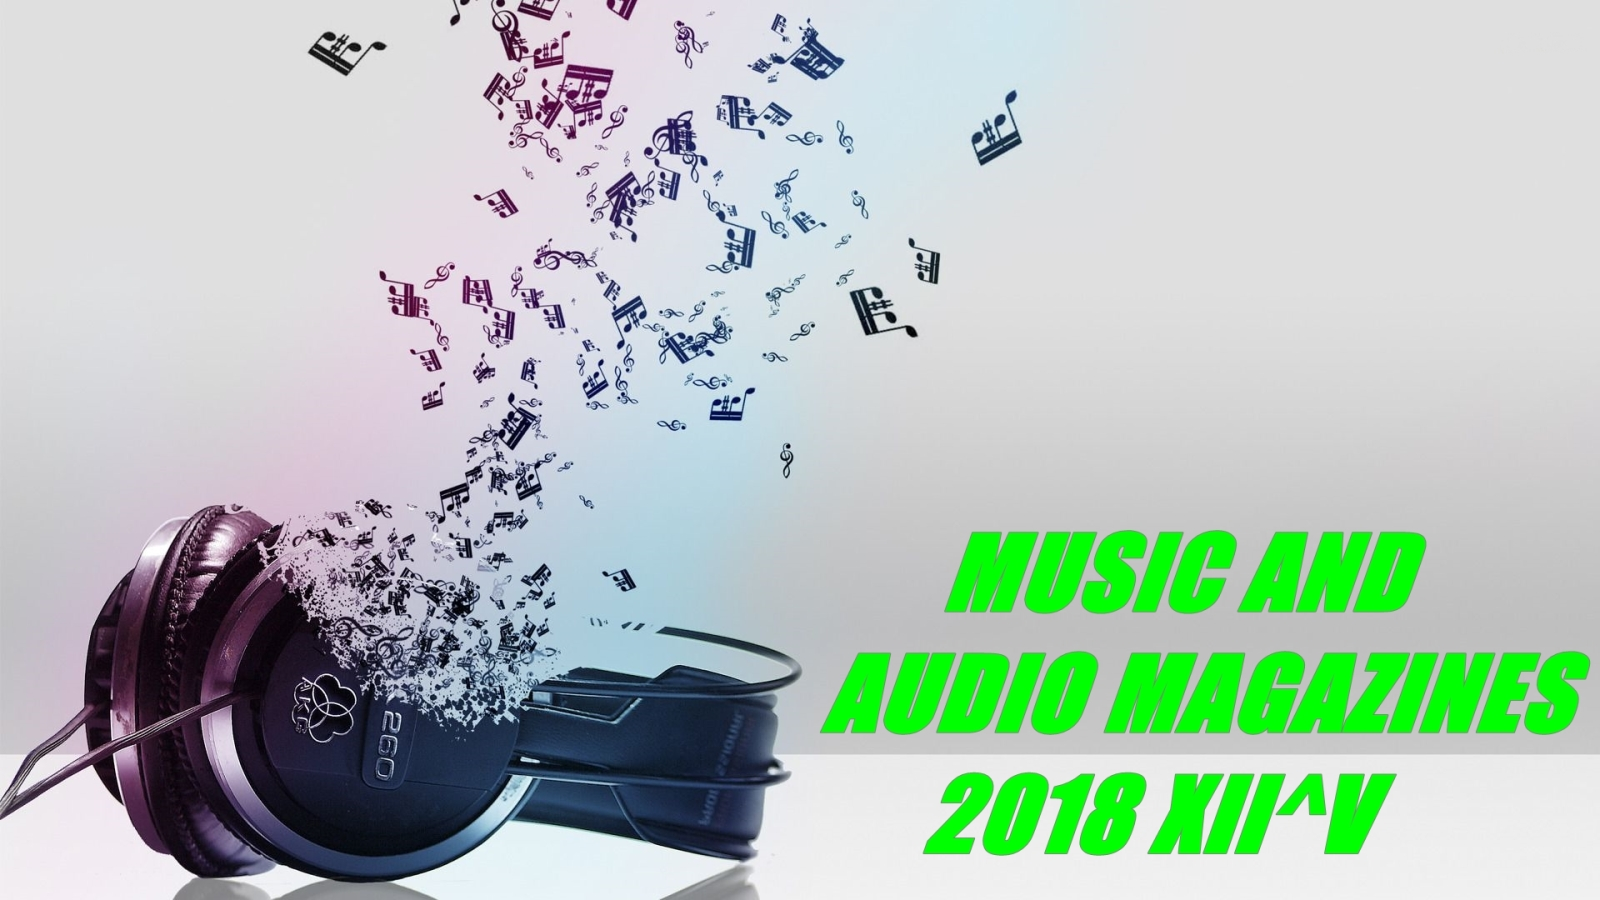 Music and Audio Magazines 2018 XII